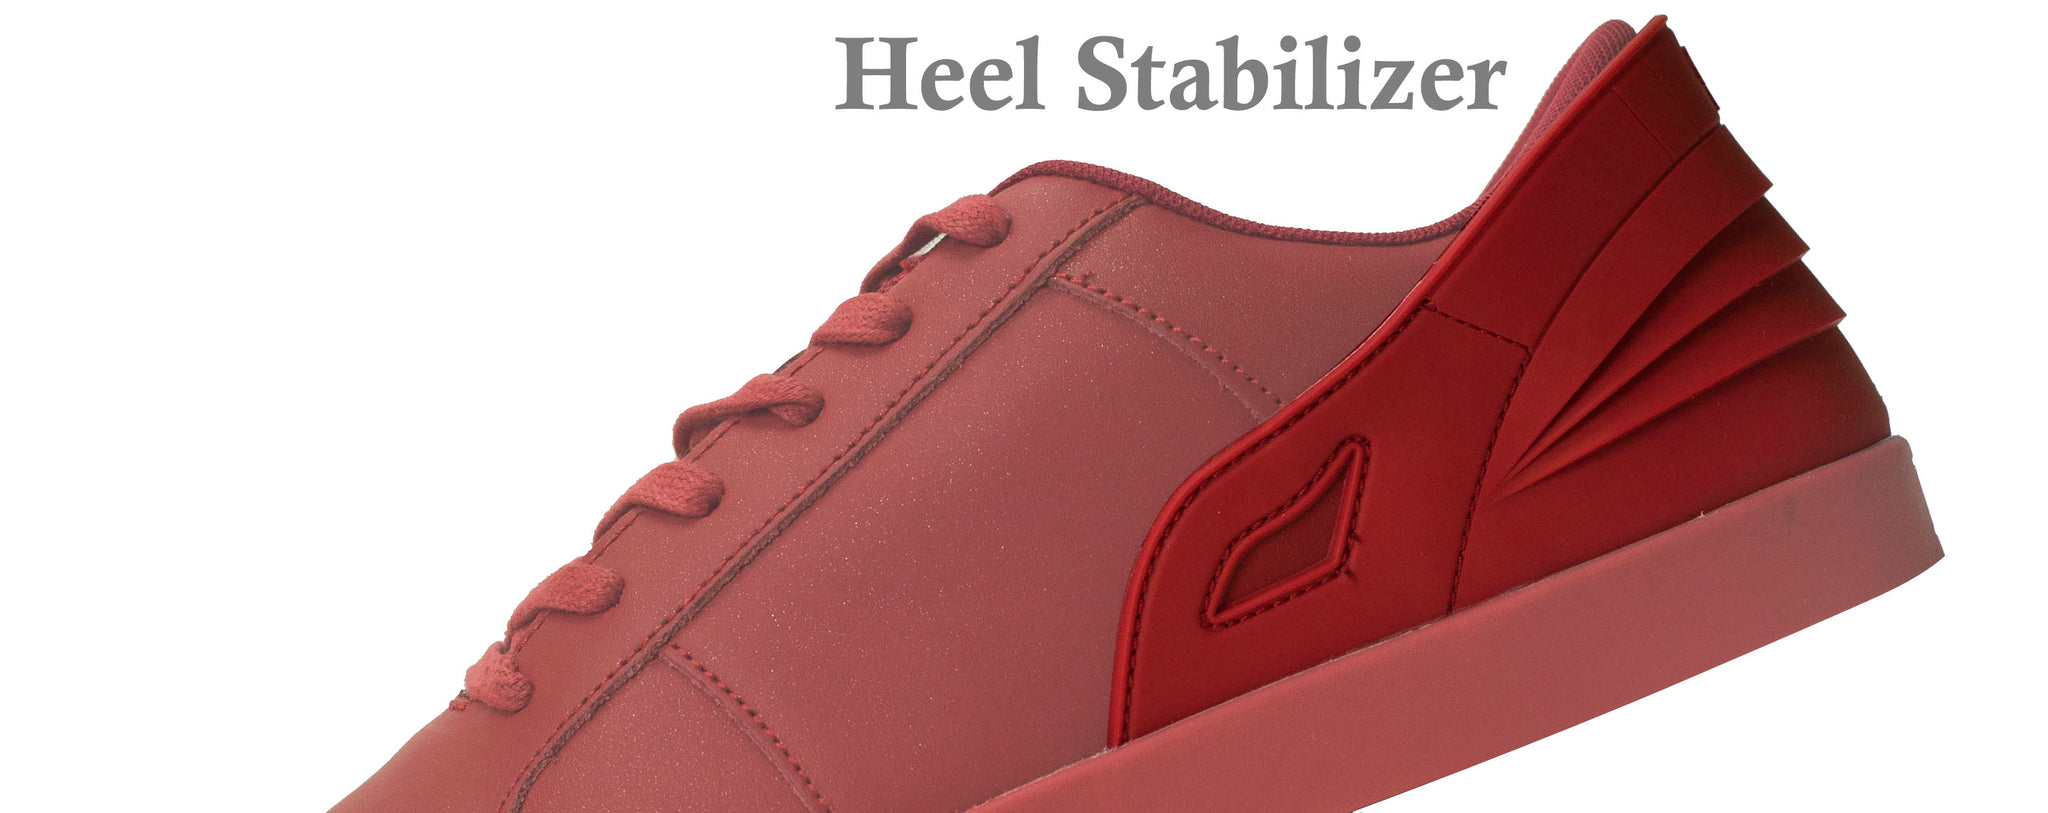 Triesti Shell: Light Feet Video & Heel Stabilzer